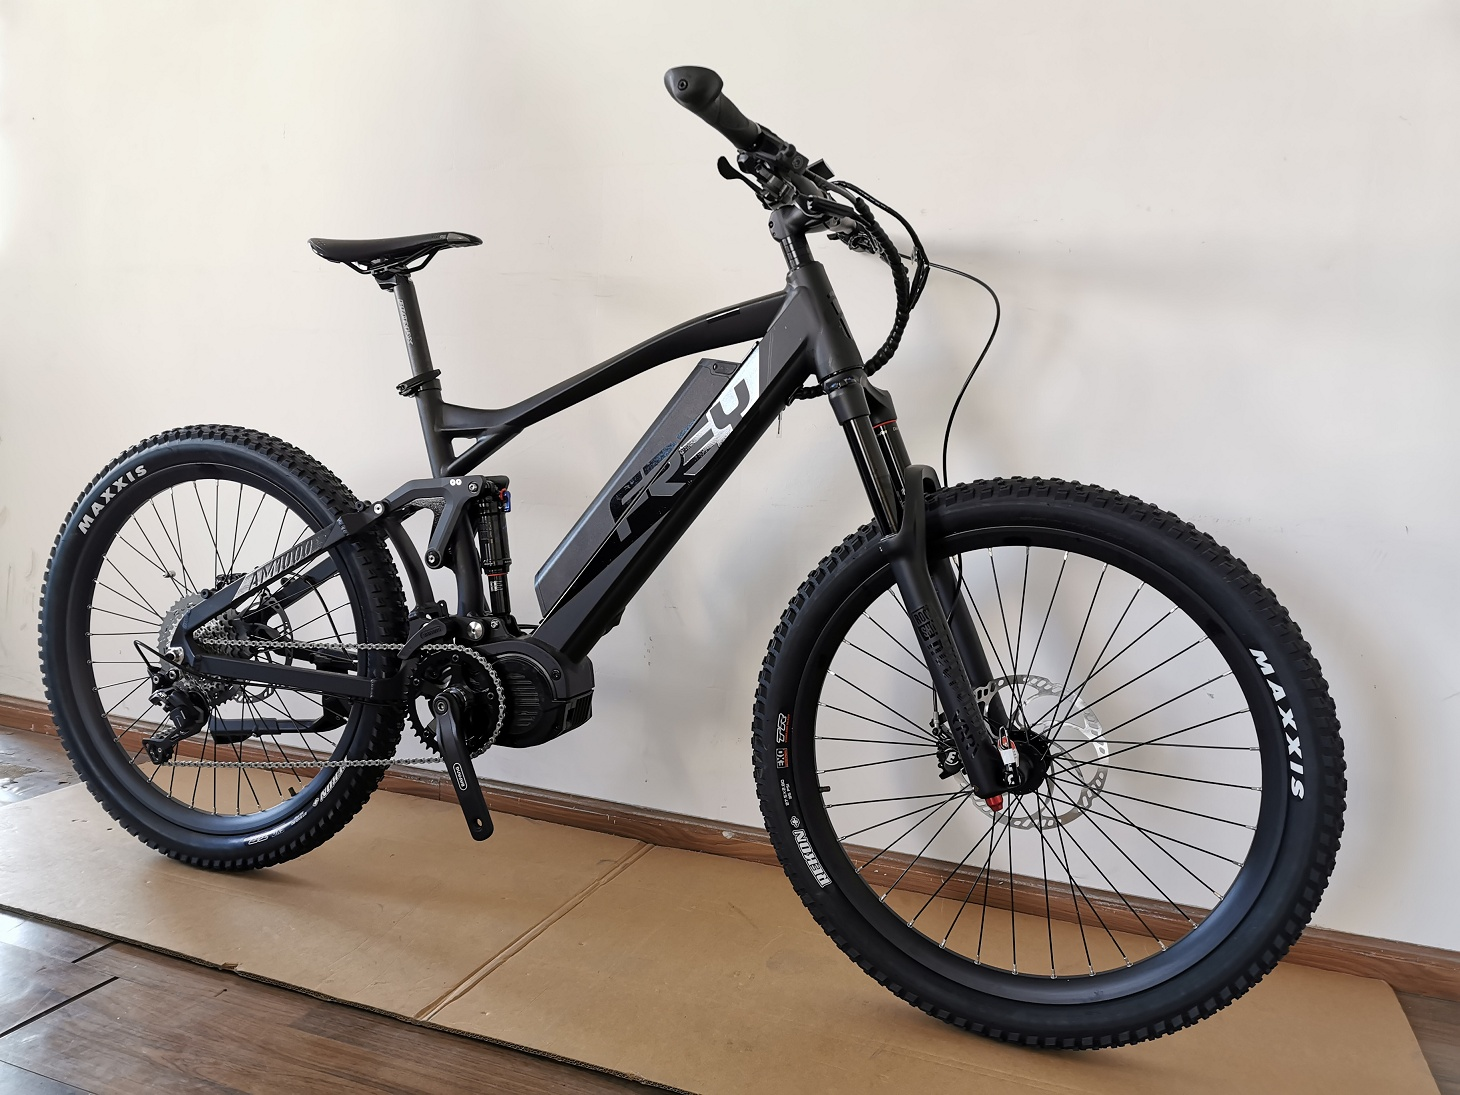 Frey AM1000 5.0 Bafang M620 Full Suspension Elektrische Mountainbike/Emtb G510.1000 Motor.